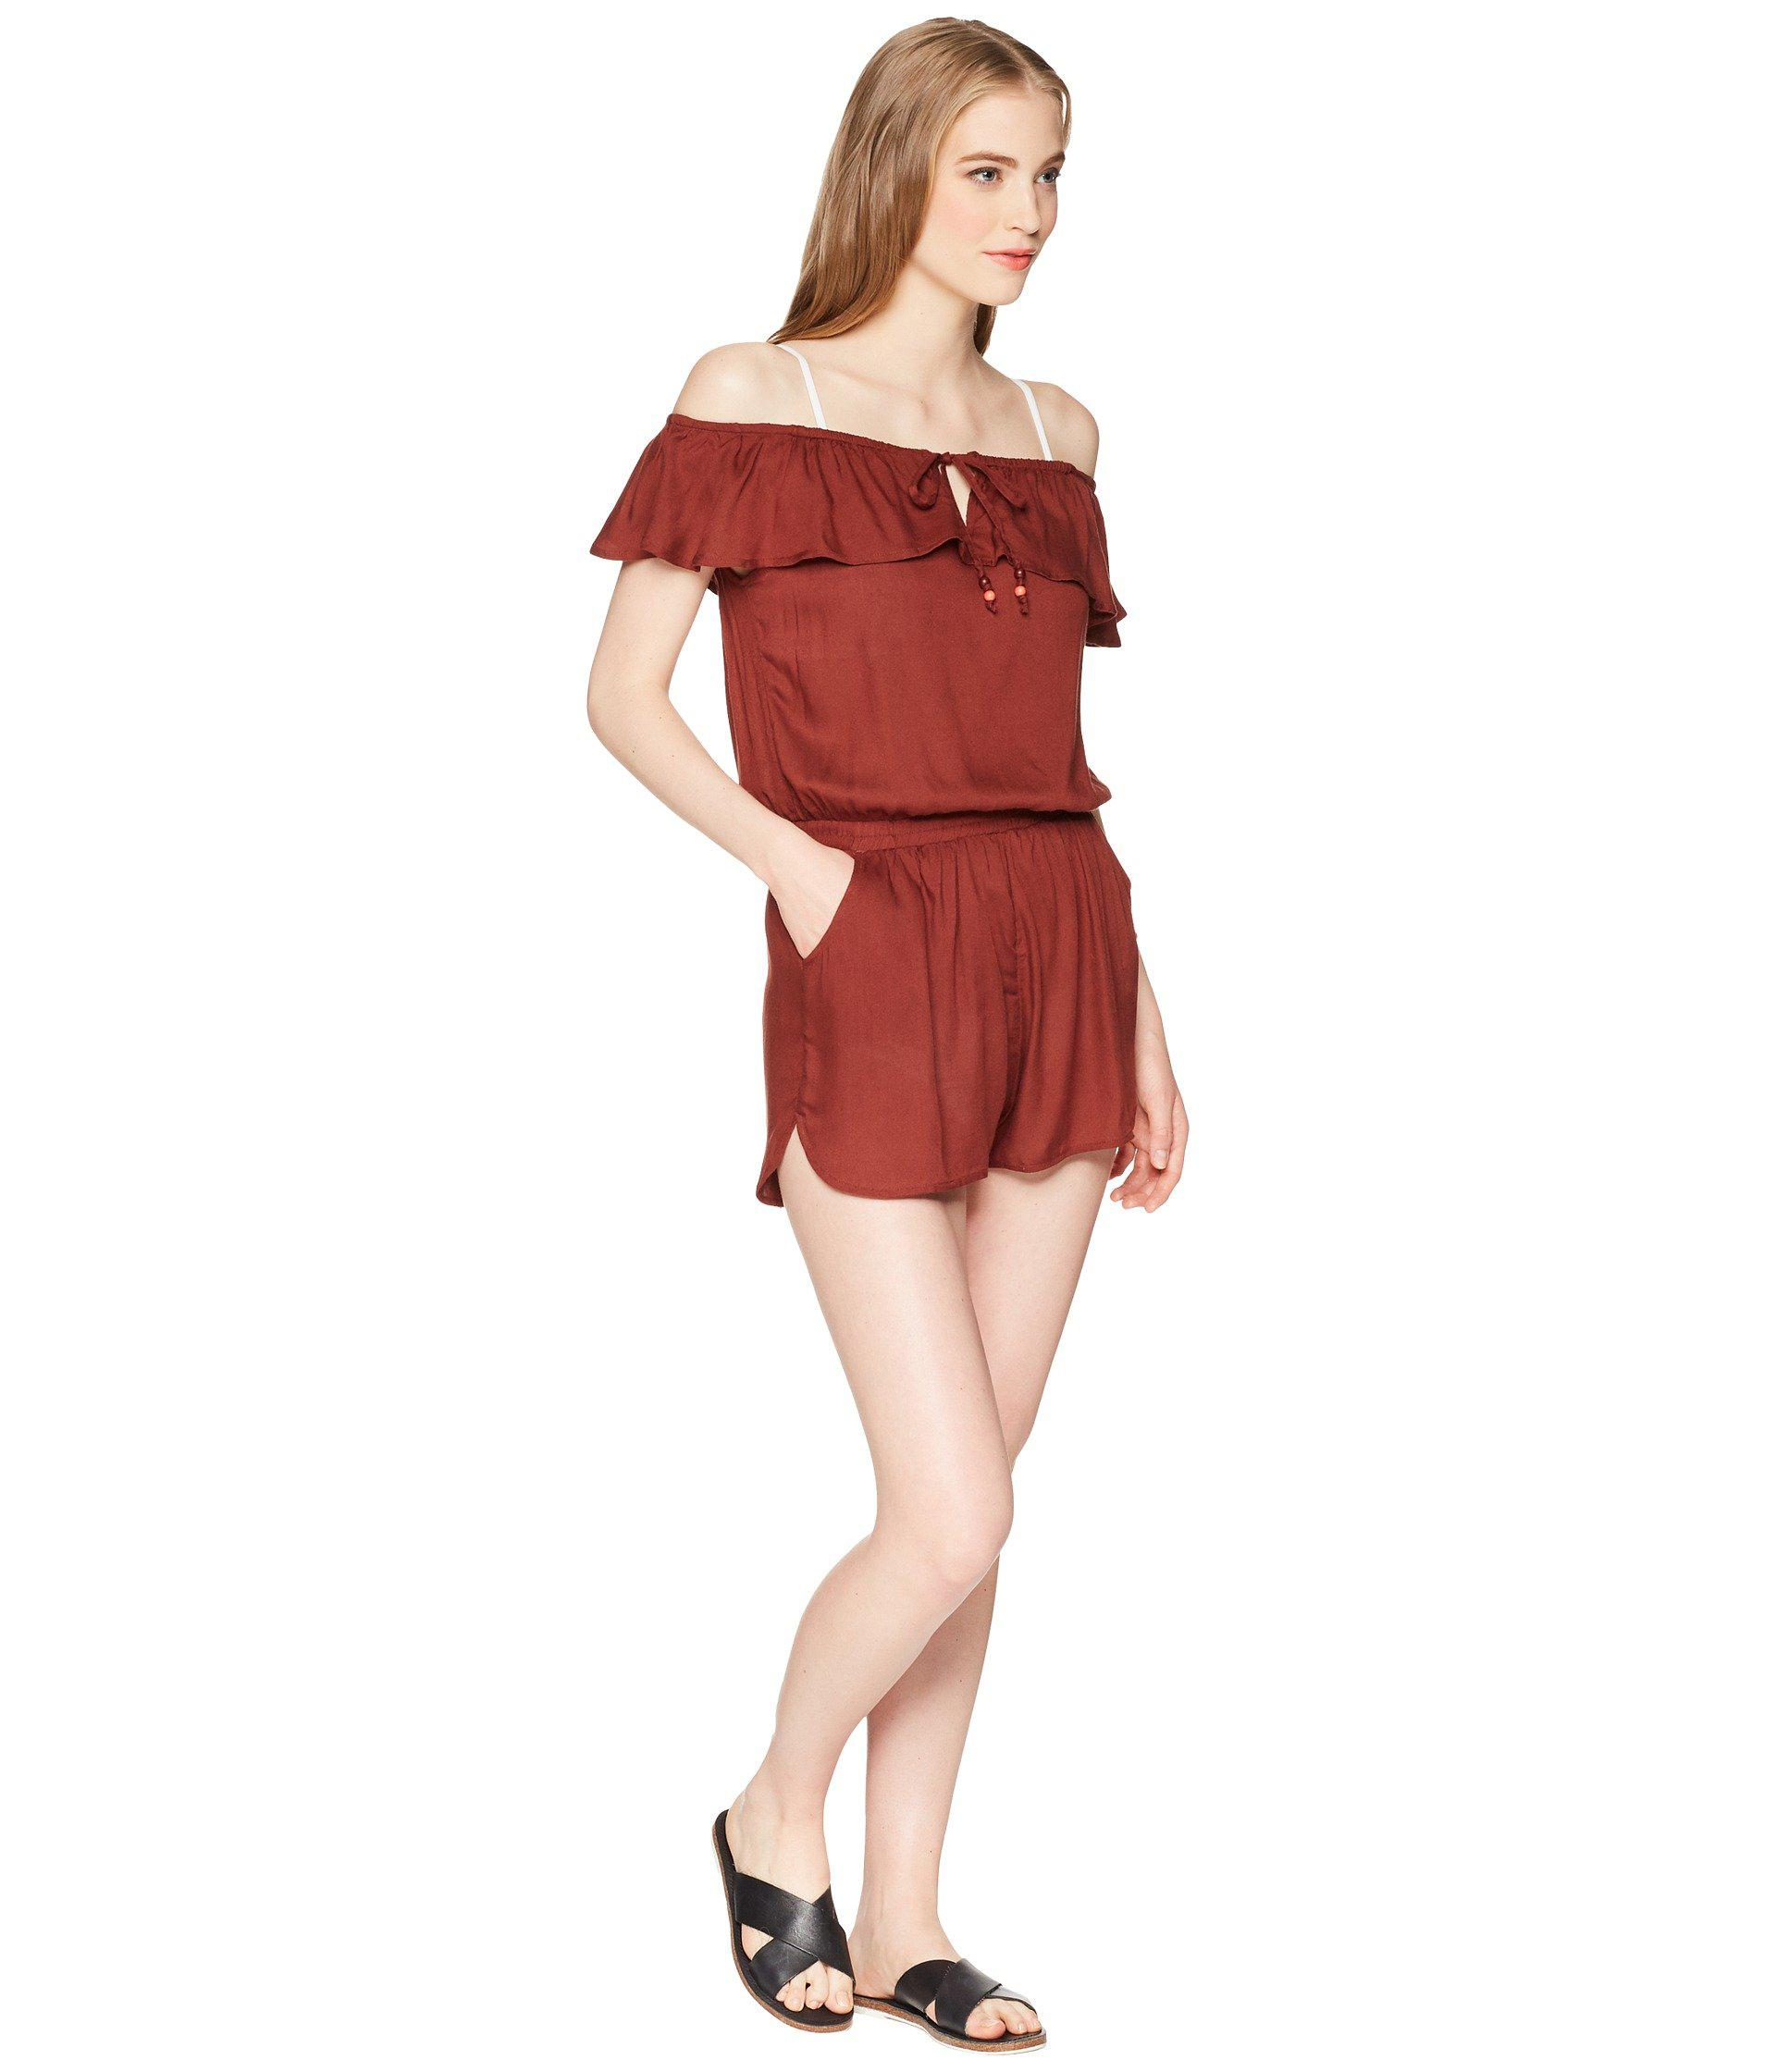 c64057ab3508 Lyst - Roxy Western Holiday Romper Cover-up in Red